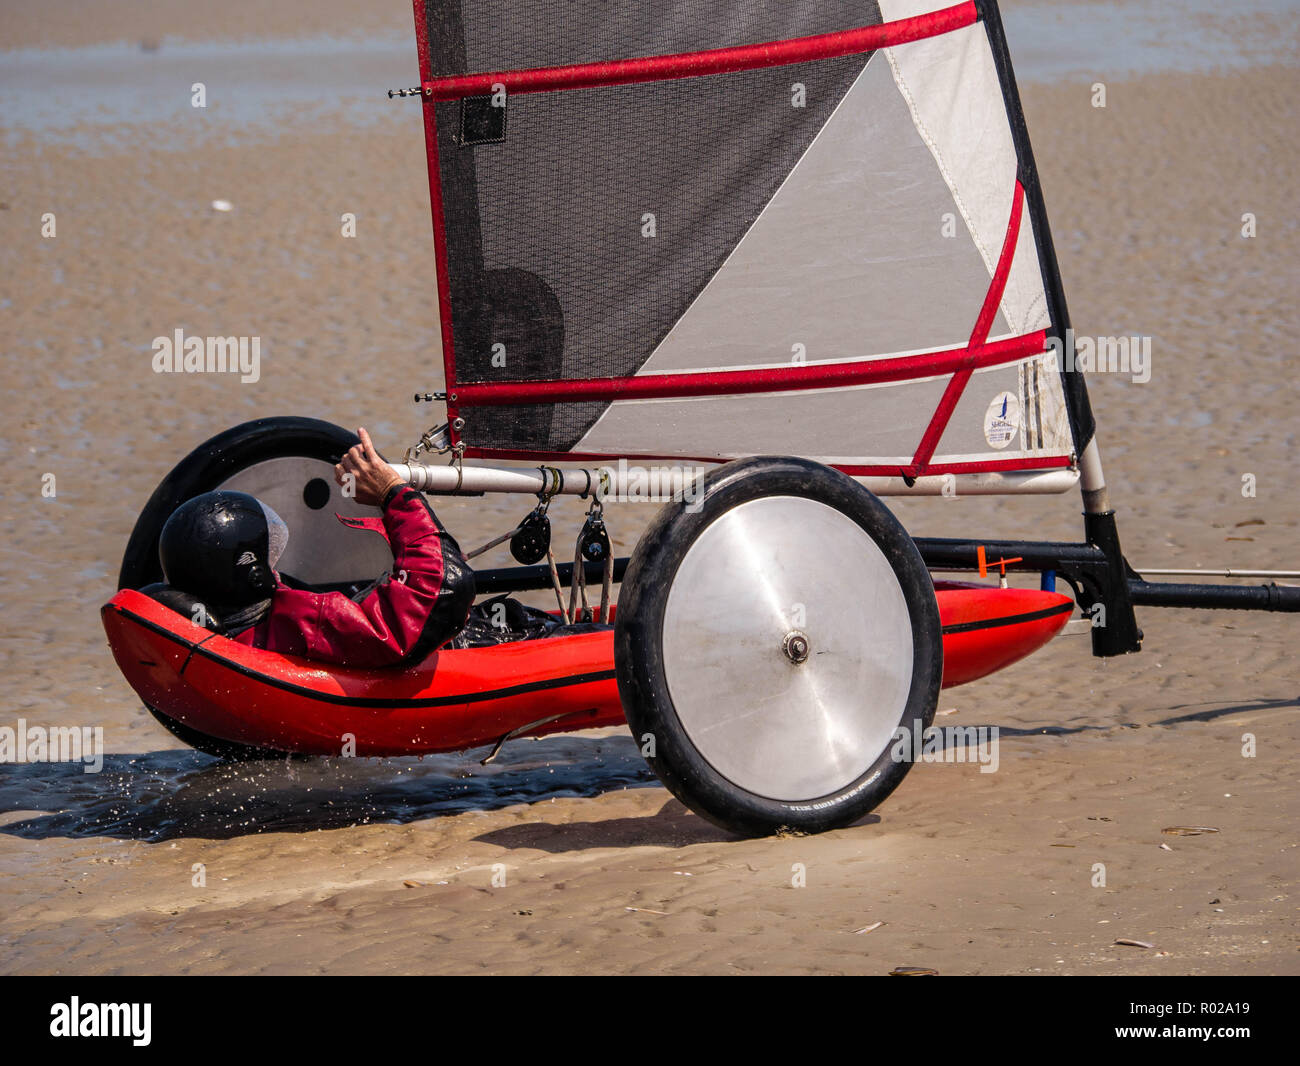 Close-up of a fast moving sand yacht at the beach - Stock Image